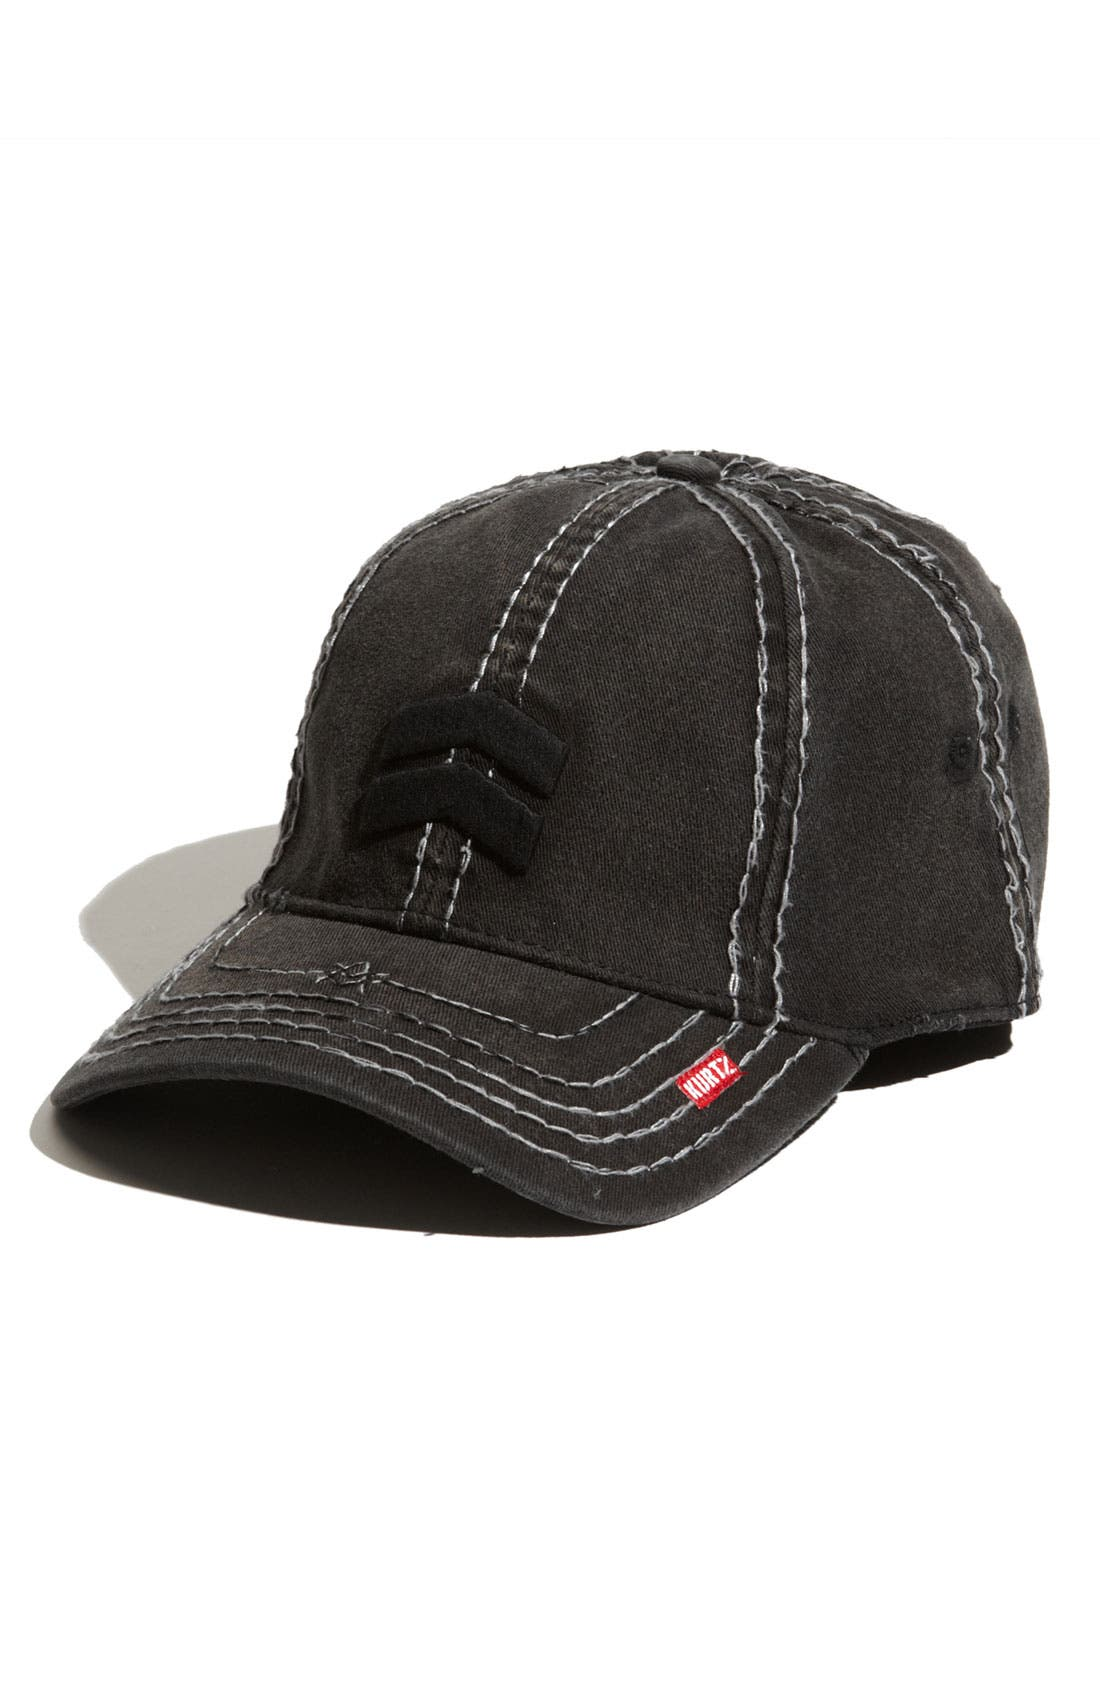 'Albert Aflex' Cap,                         Main,                         color, Black